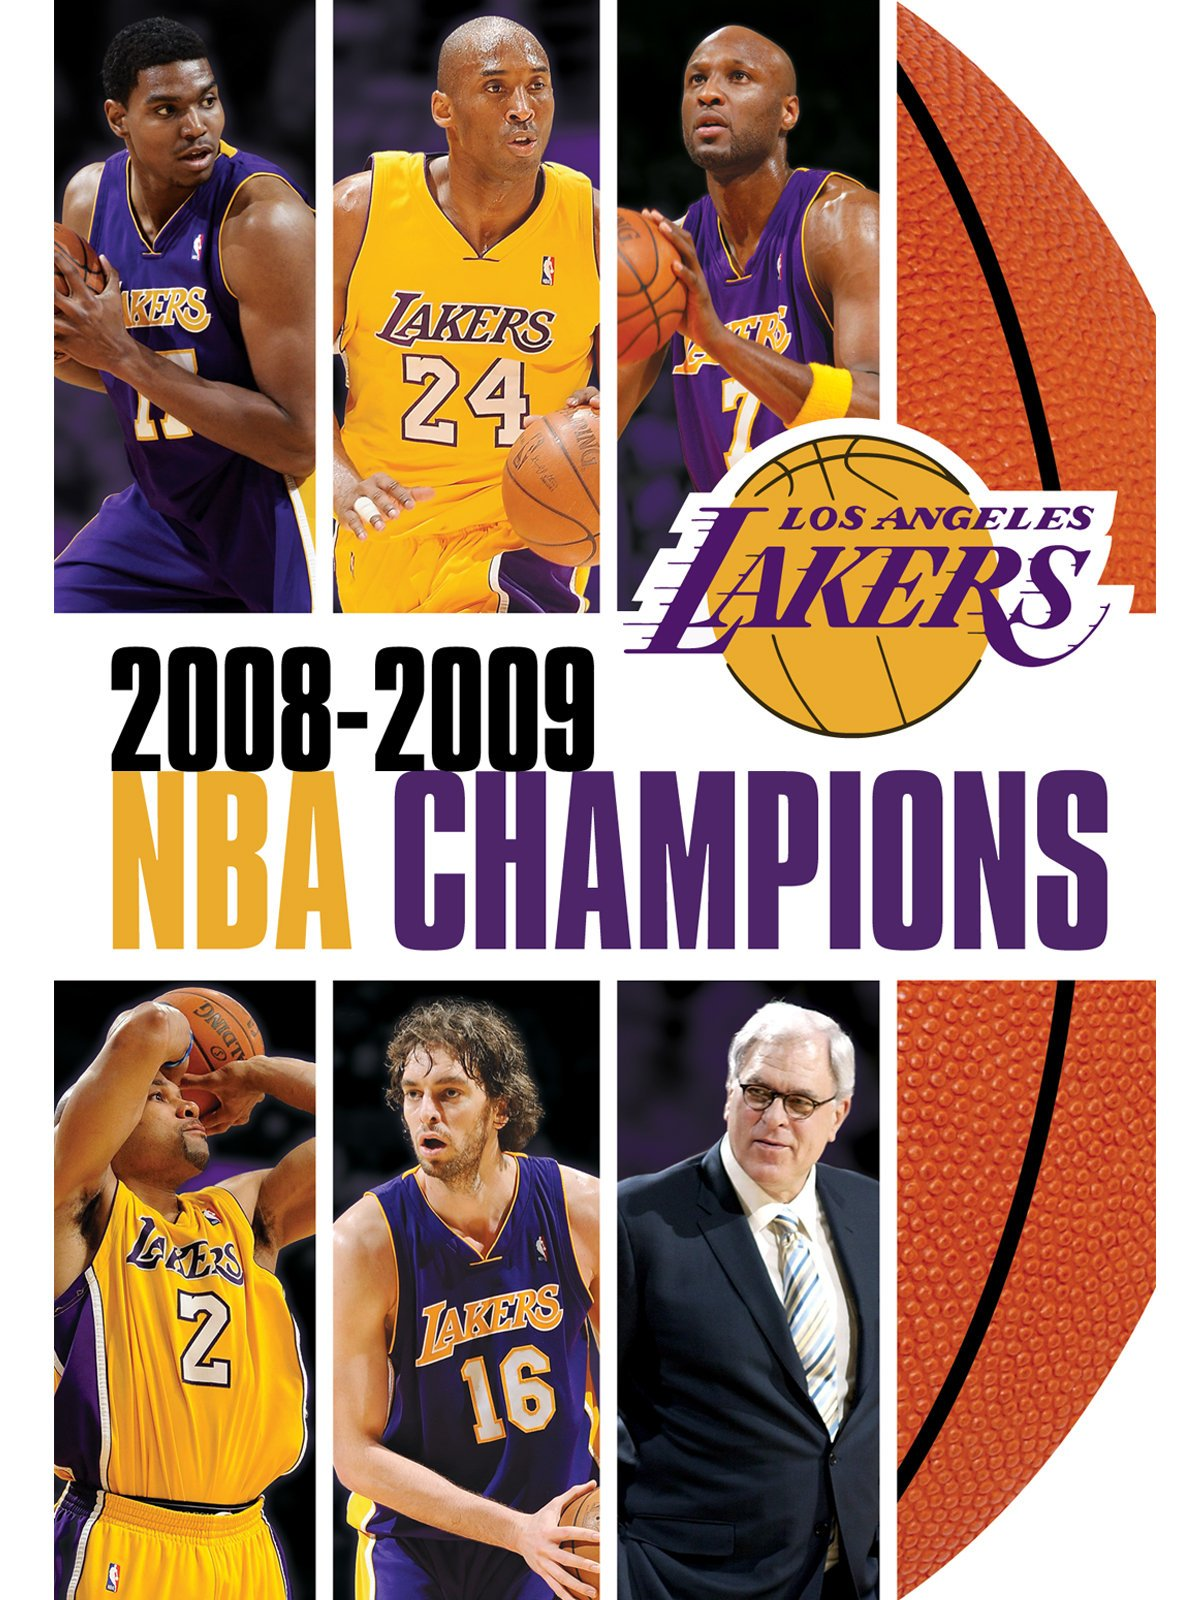 ... Amazon.com 2008-2009 NBA Champions - Los Angeles Lakers Kobe Bryant 8d328749a